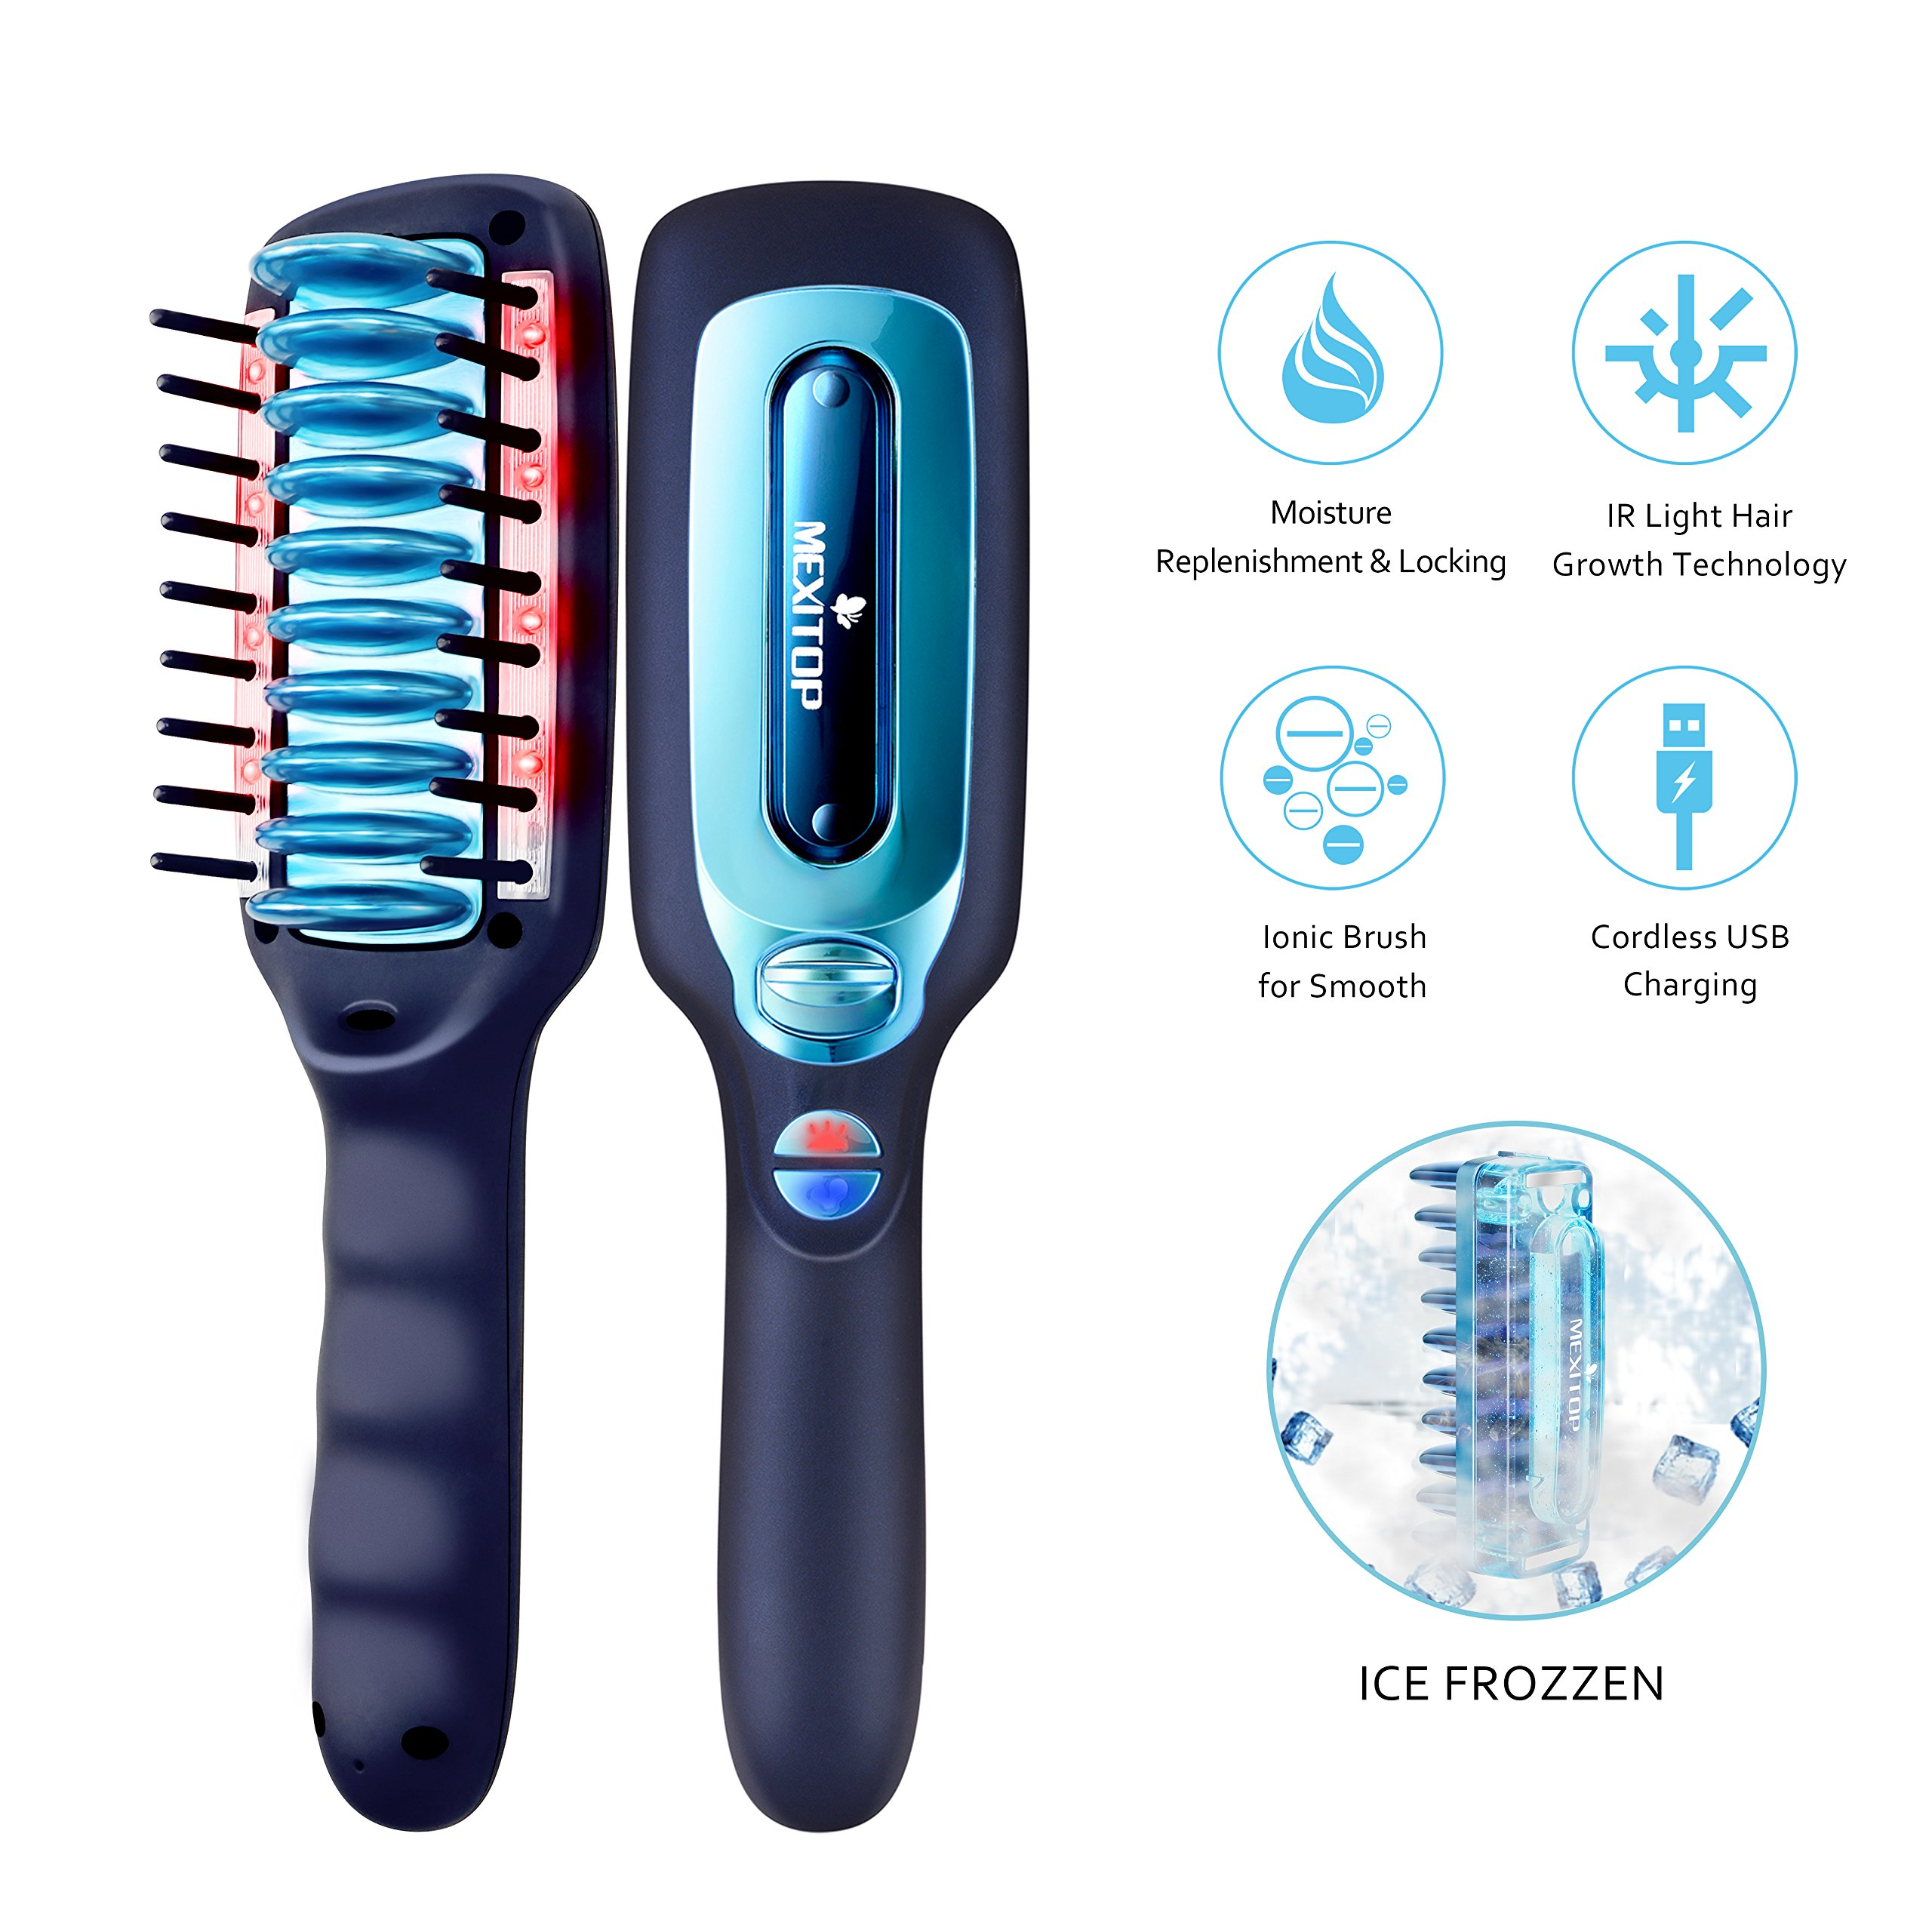 Hair Repair Laser Growth Brush – Mexitop Ice Hair Care Conditioning System, Locked in Hydration, Hair Growth, Dry & Damaged Hair Treatment,Ionic Brush Reducing Hair Knotting, USB Charging, Matt Black